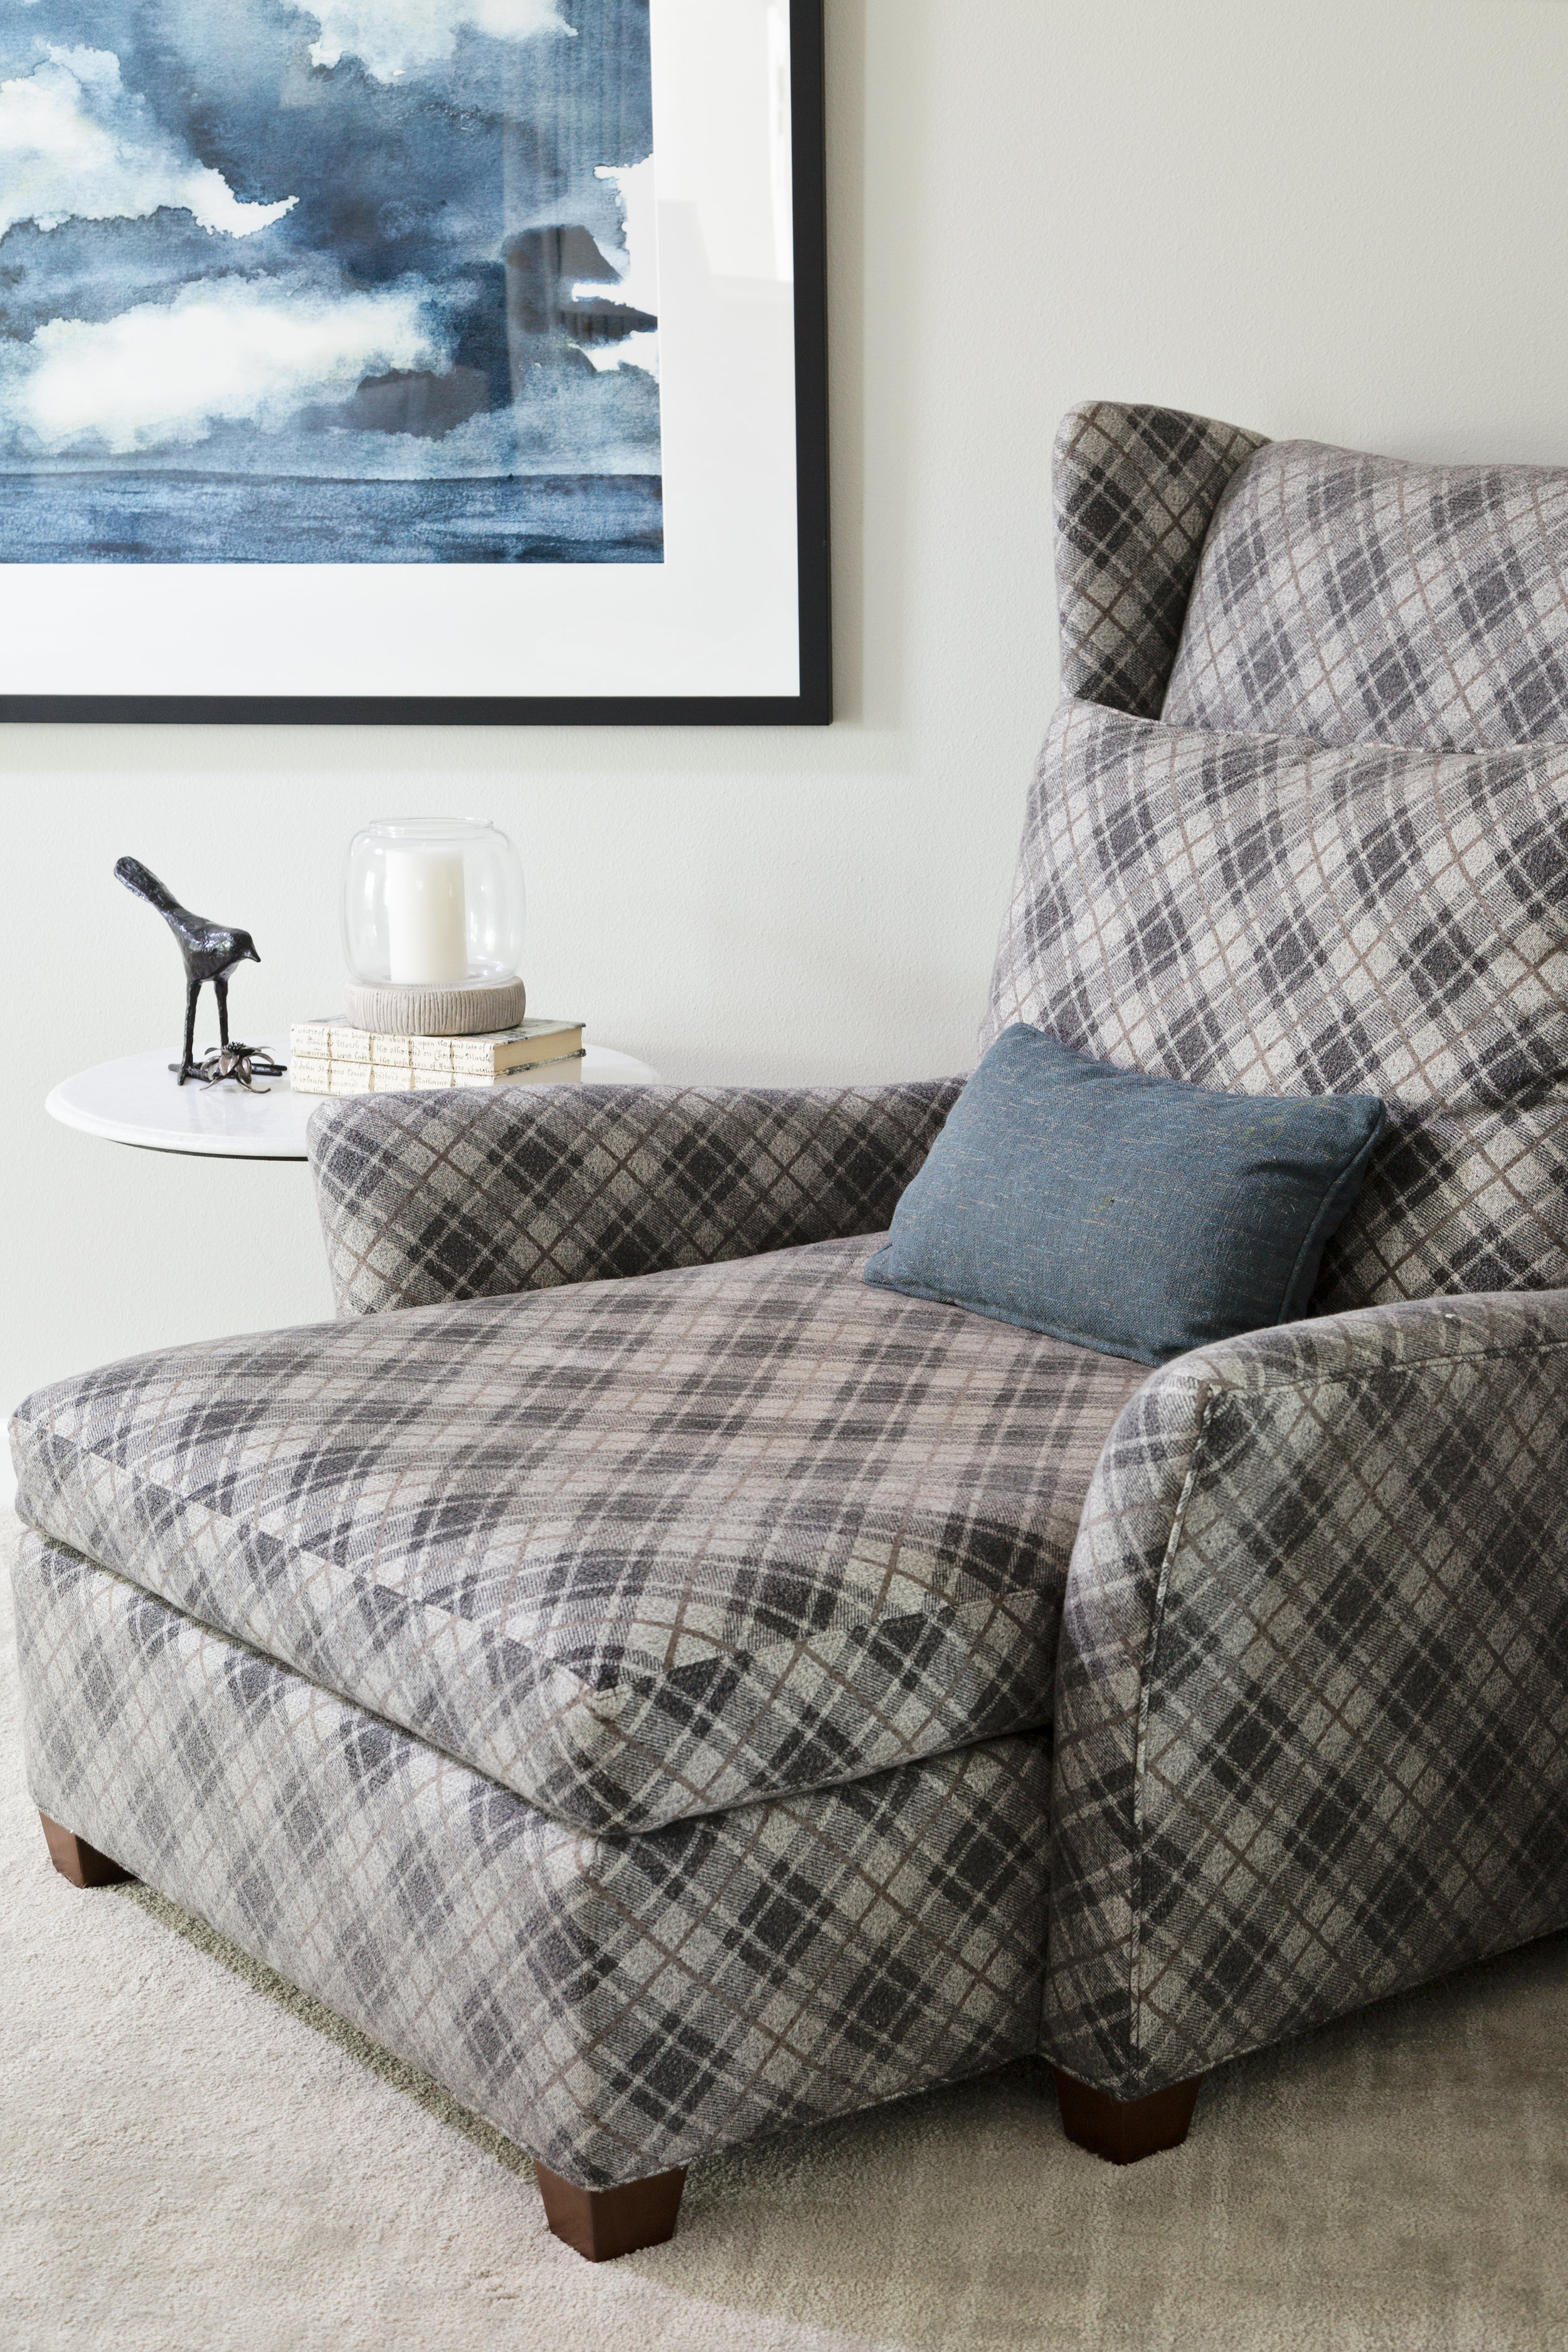 The Coziest Chair and a Half Upholstered in the Softest Plaid Fabric